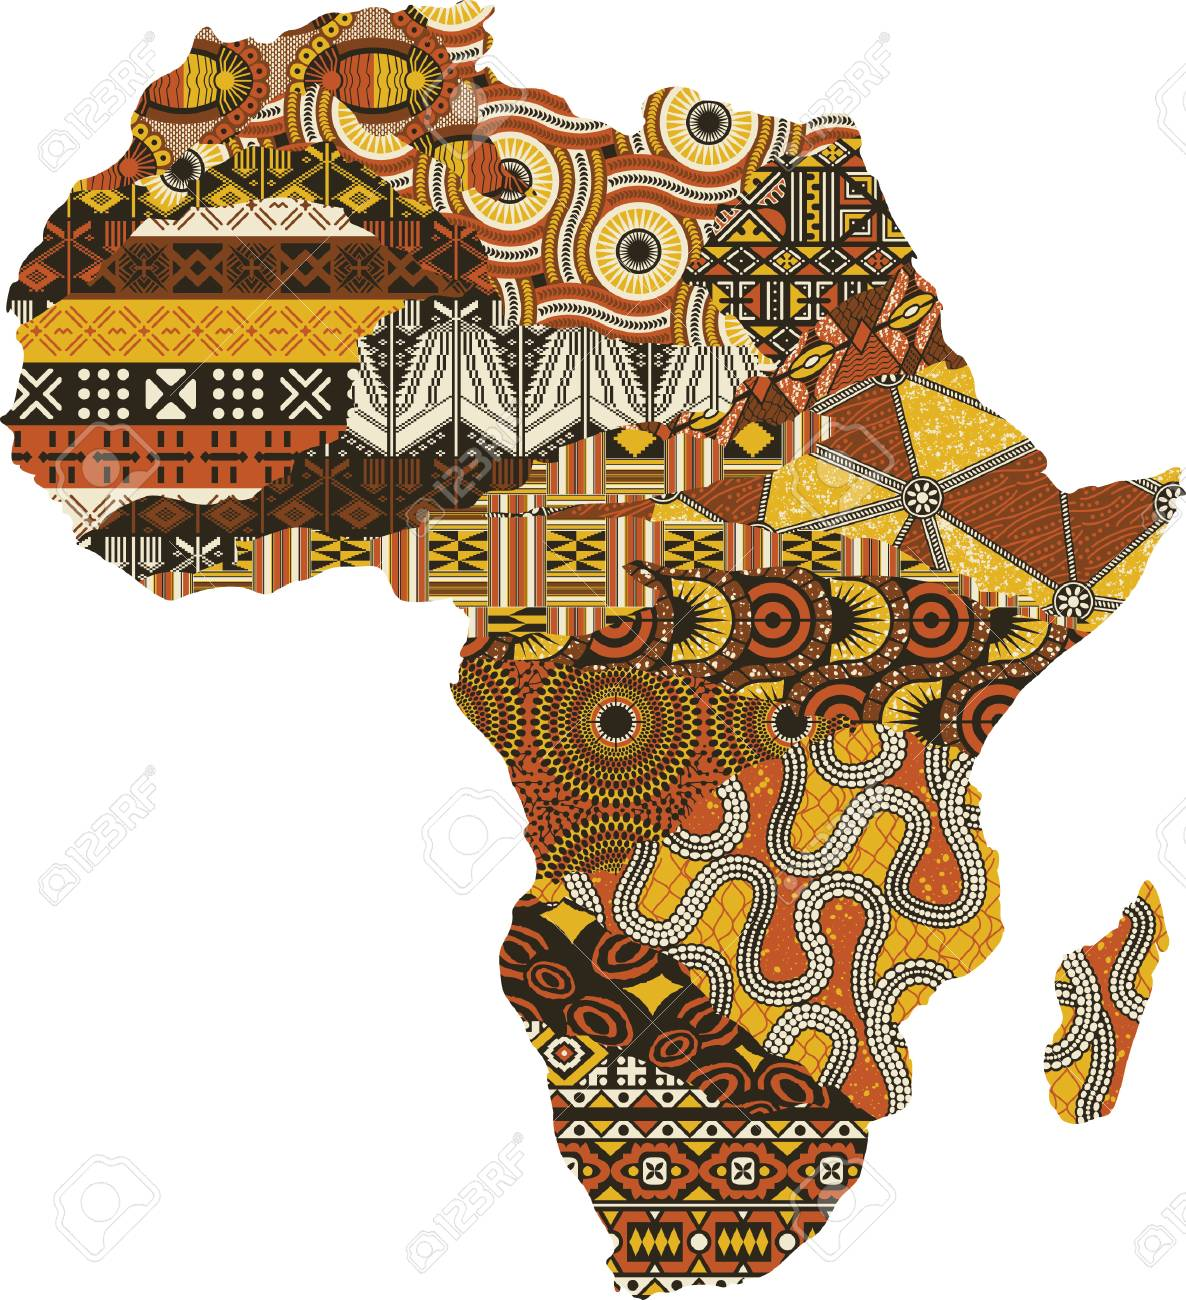 Abstract Africa map patchwork fabric, vector traditional ethnic pattern wallpaper - 103148320